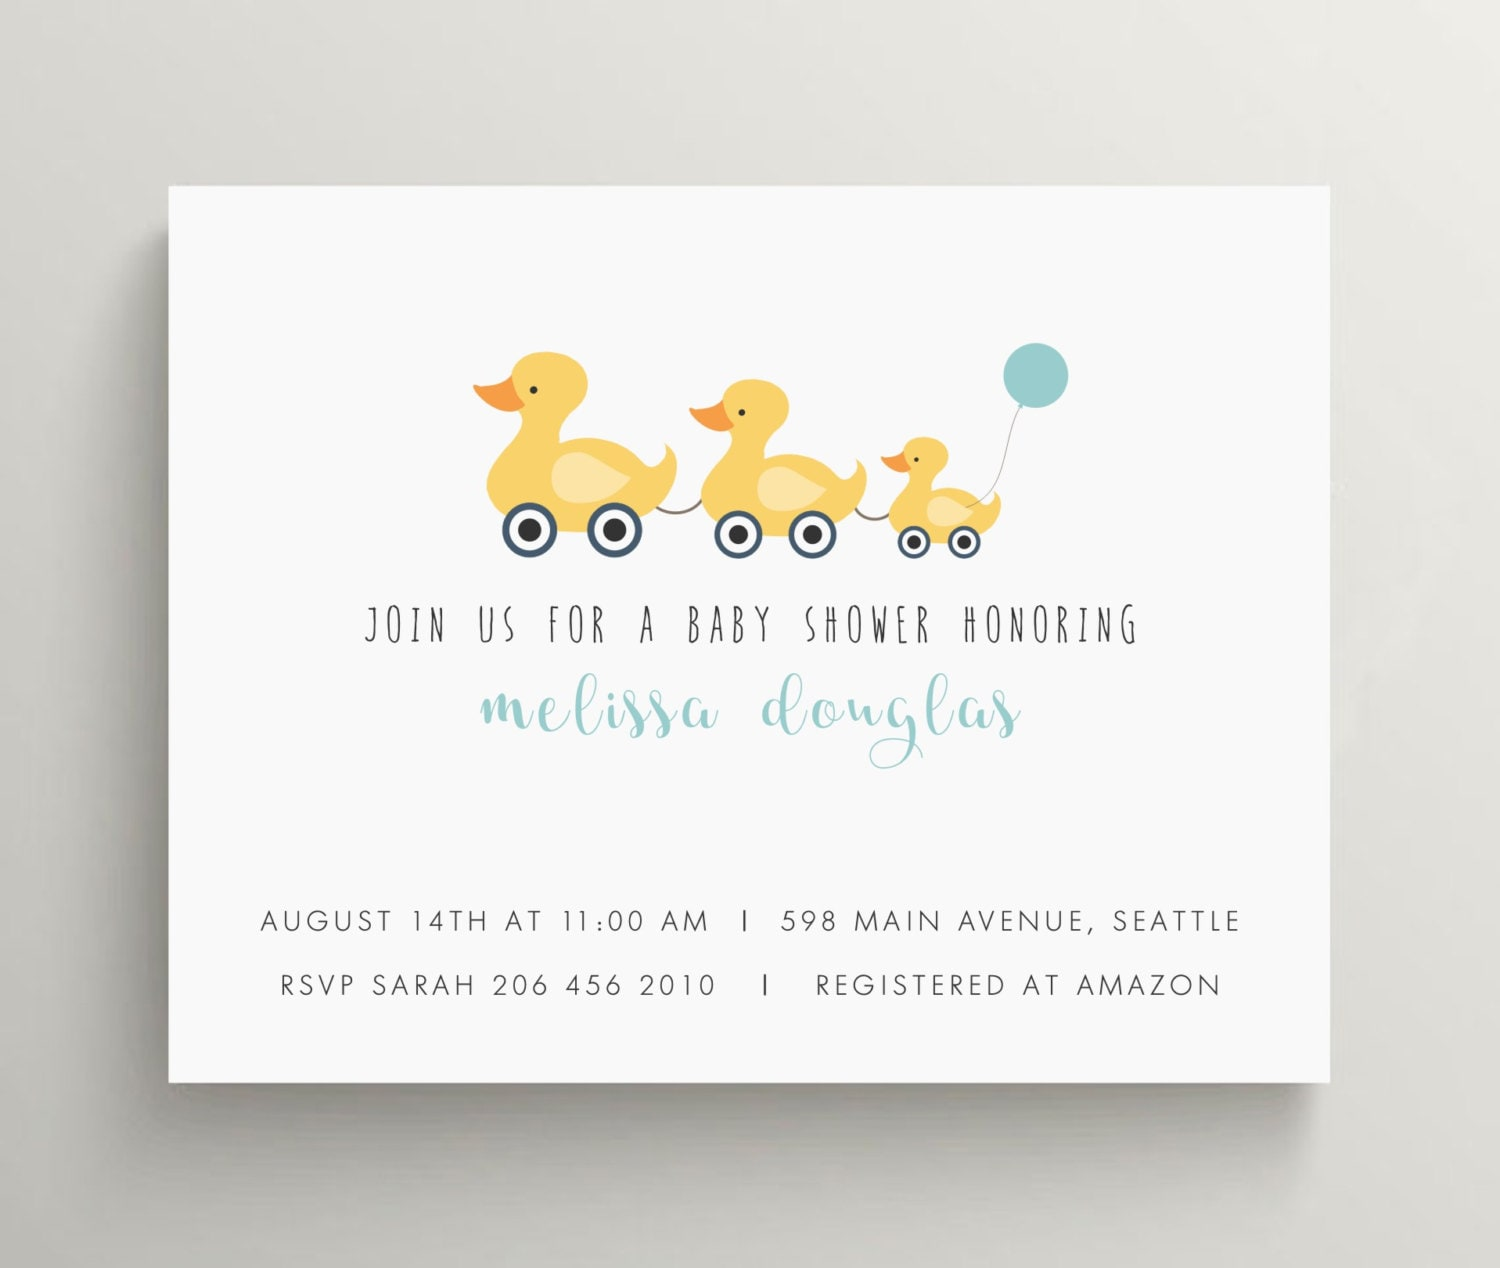 little yellow ducks invitation duck baby shower invitation | Etsy